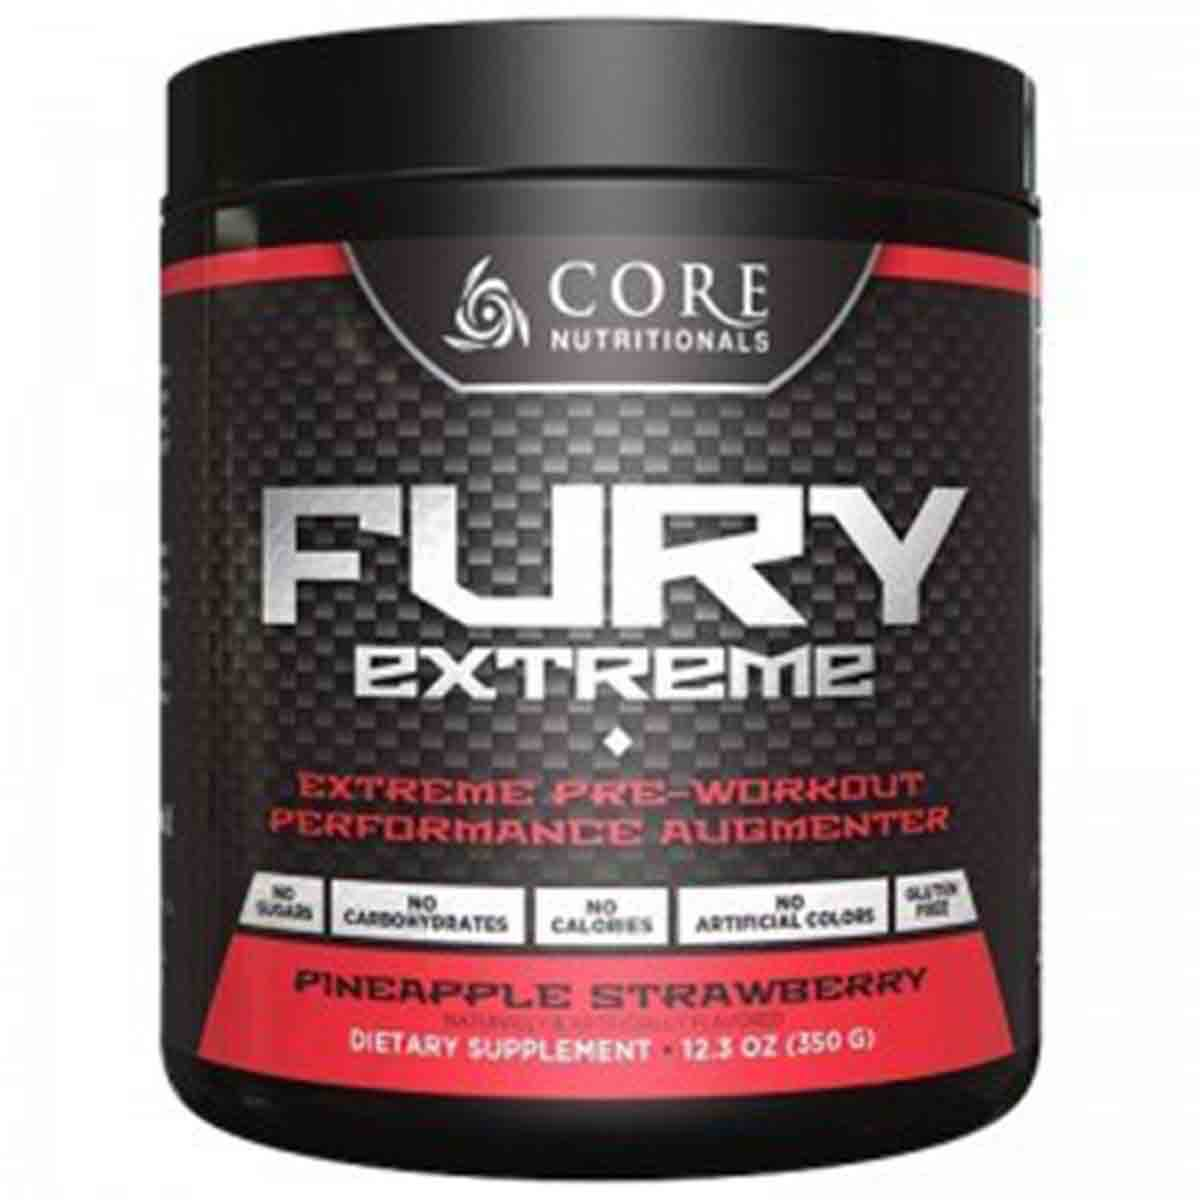 core-nutritionals-fury-extreme